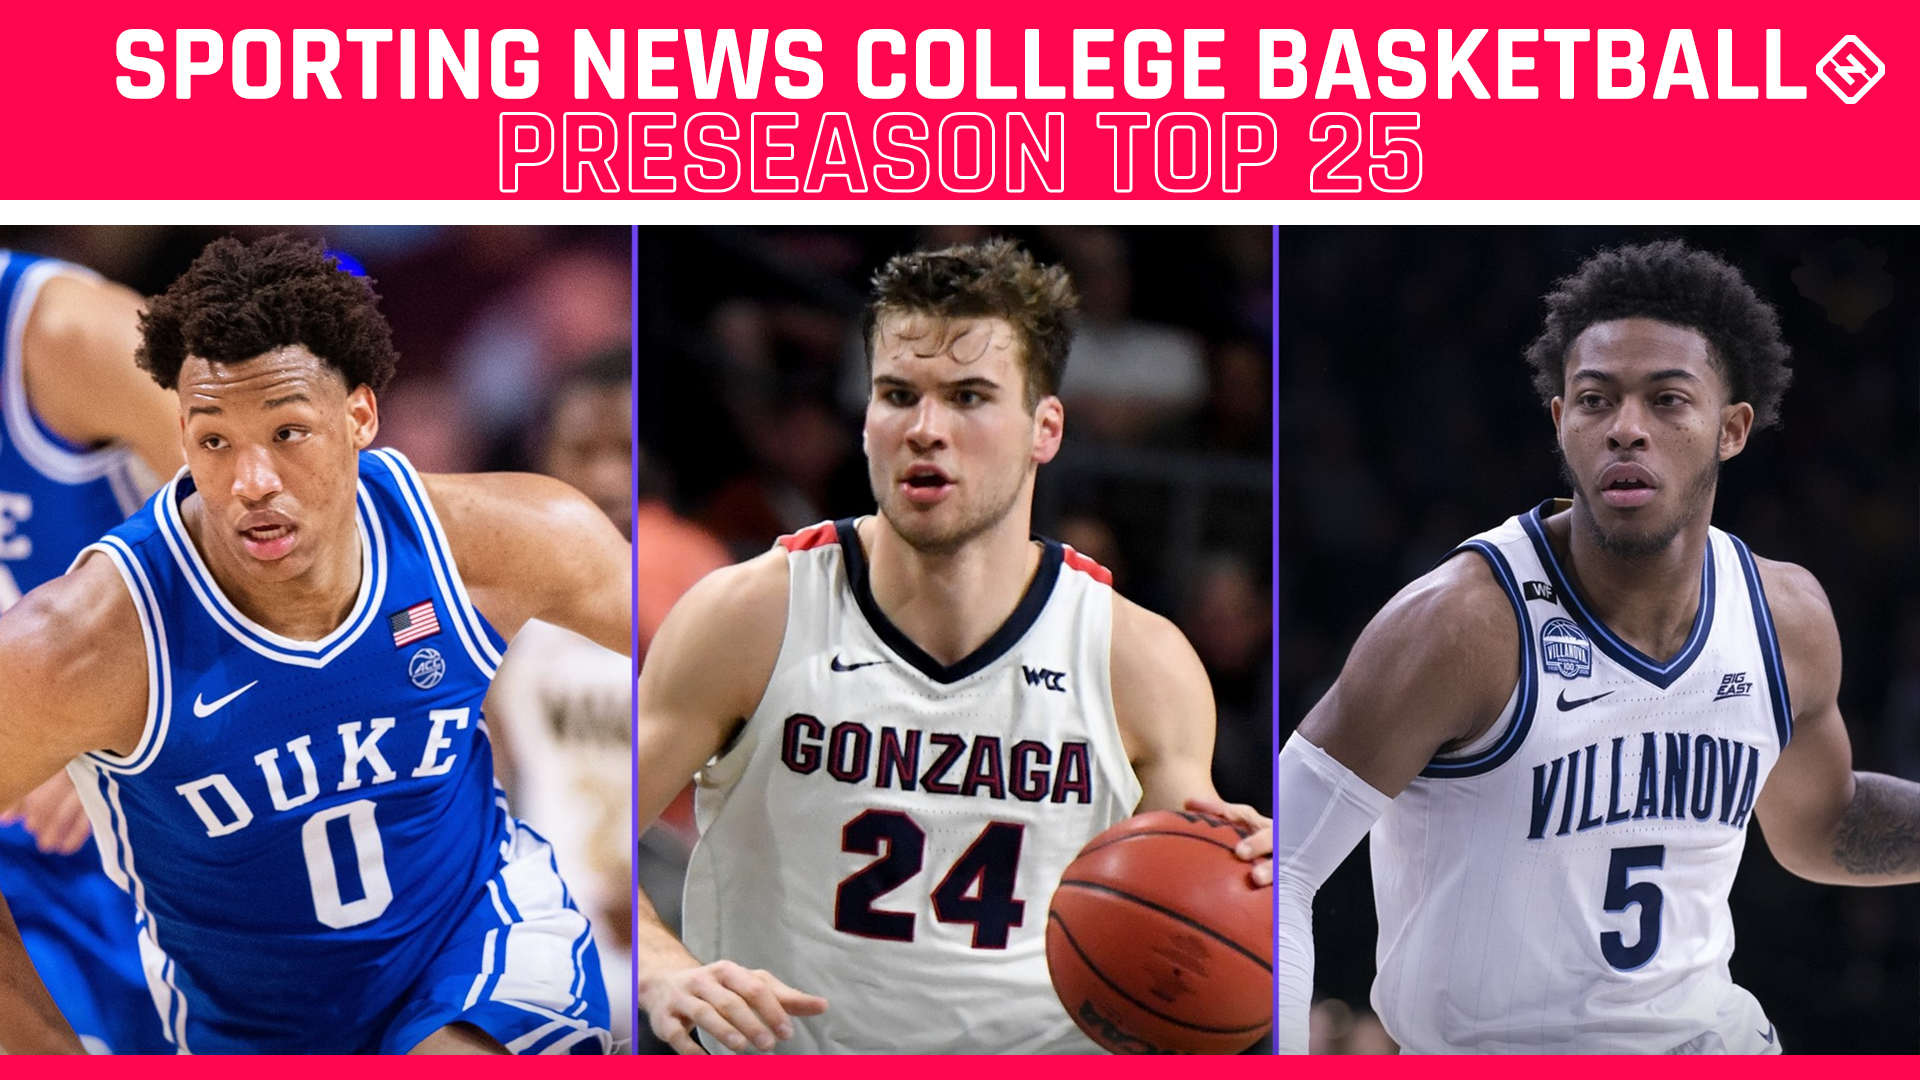 College basketball rankings: Sporting News' Preseason Top 25 for 2020-21